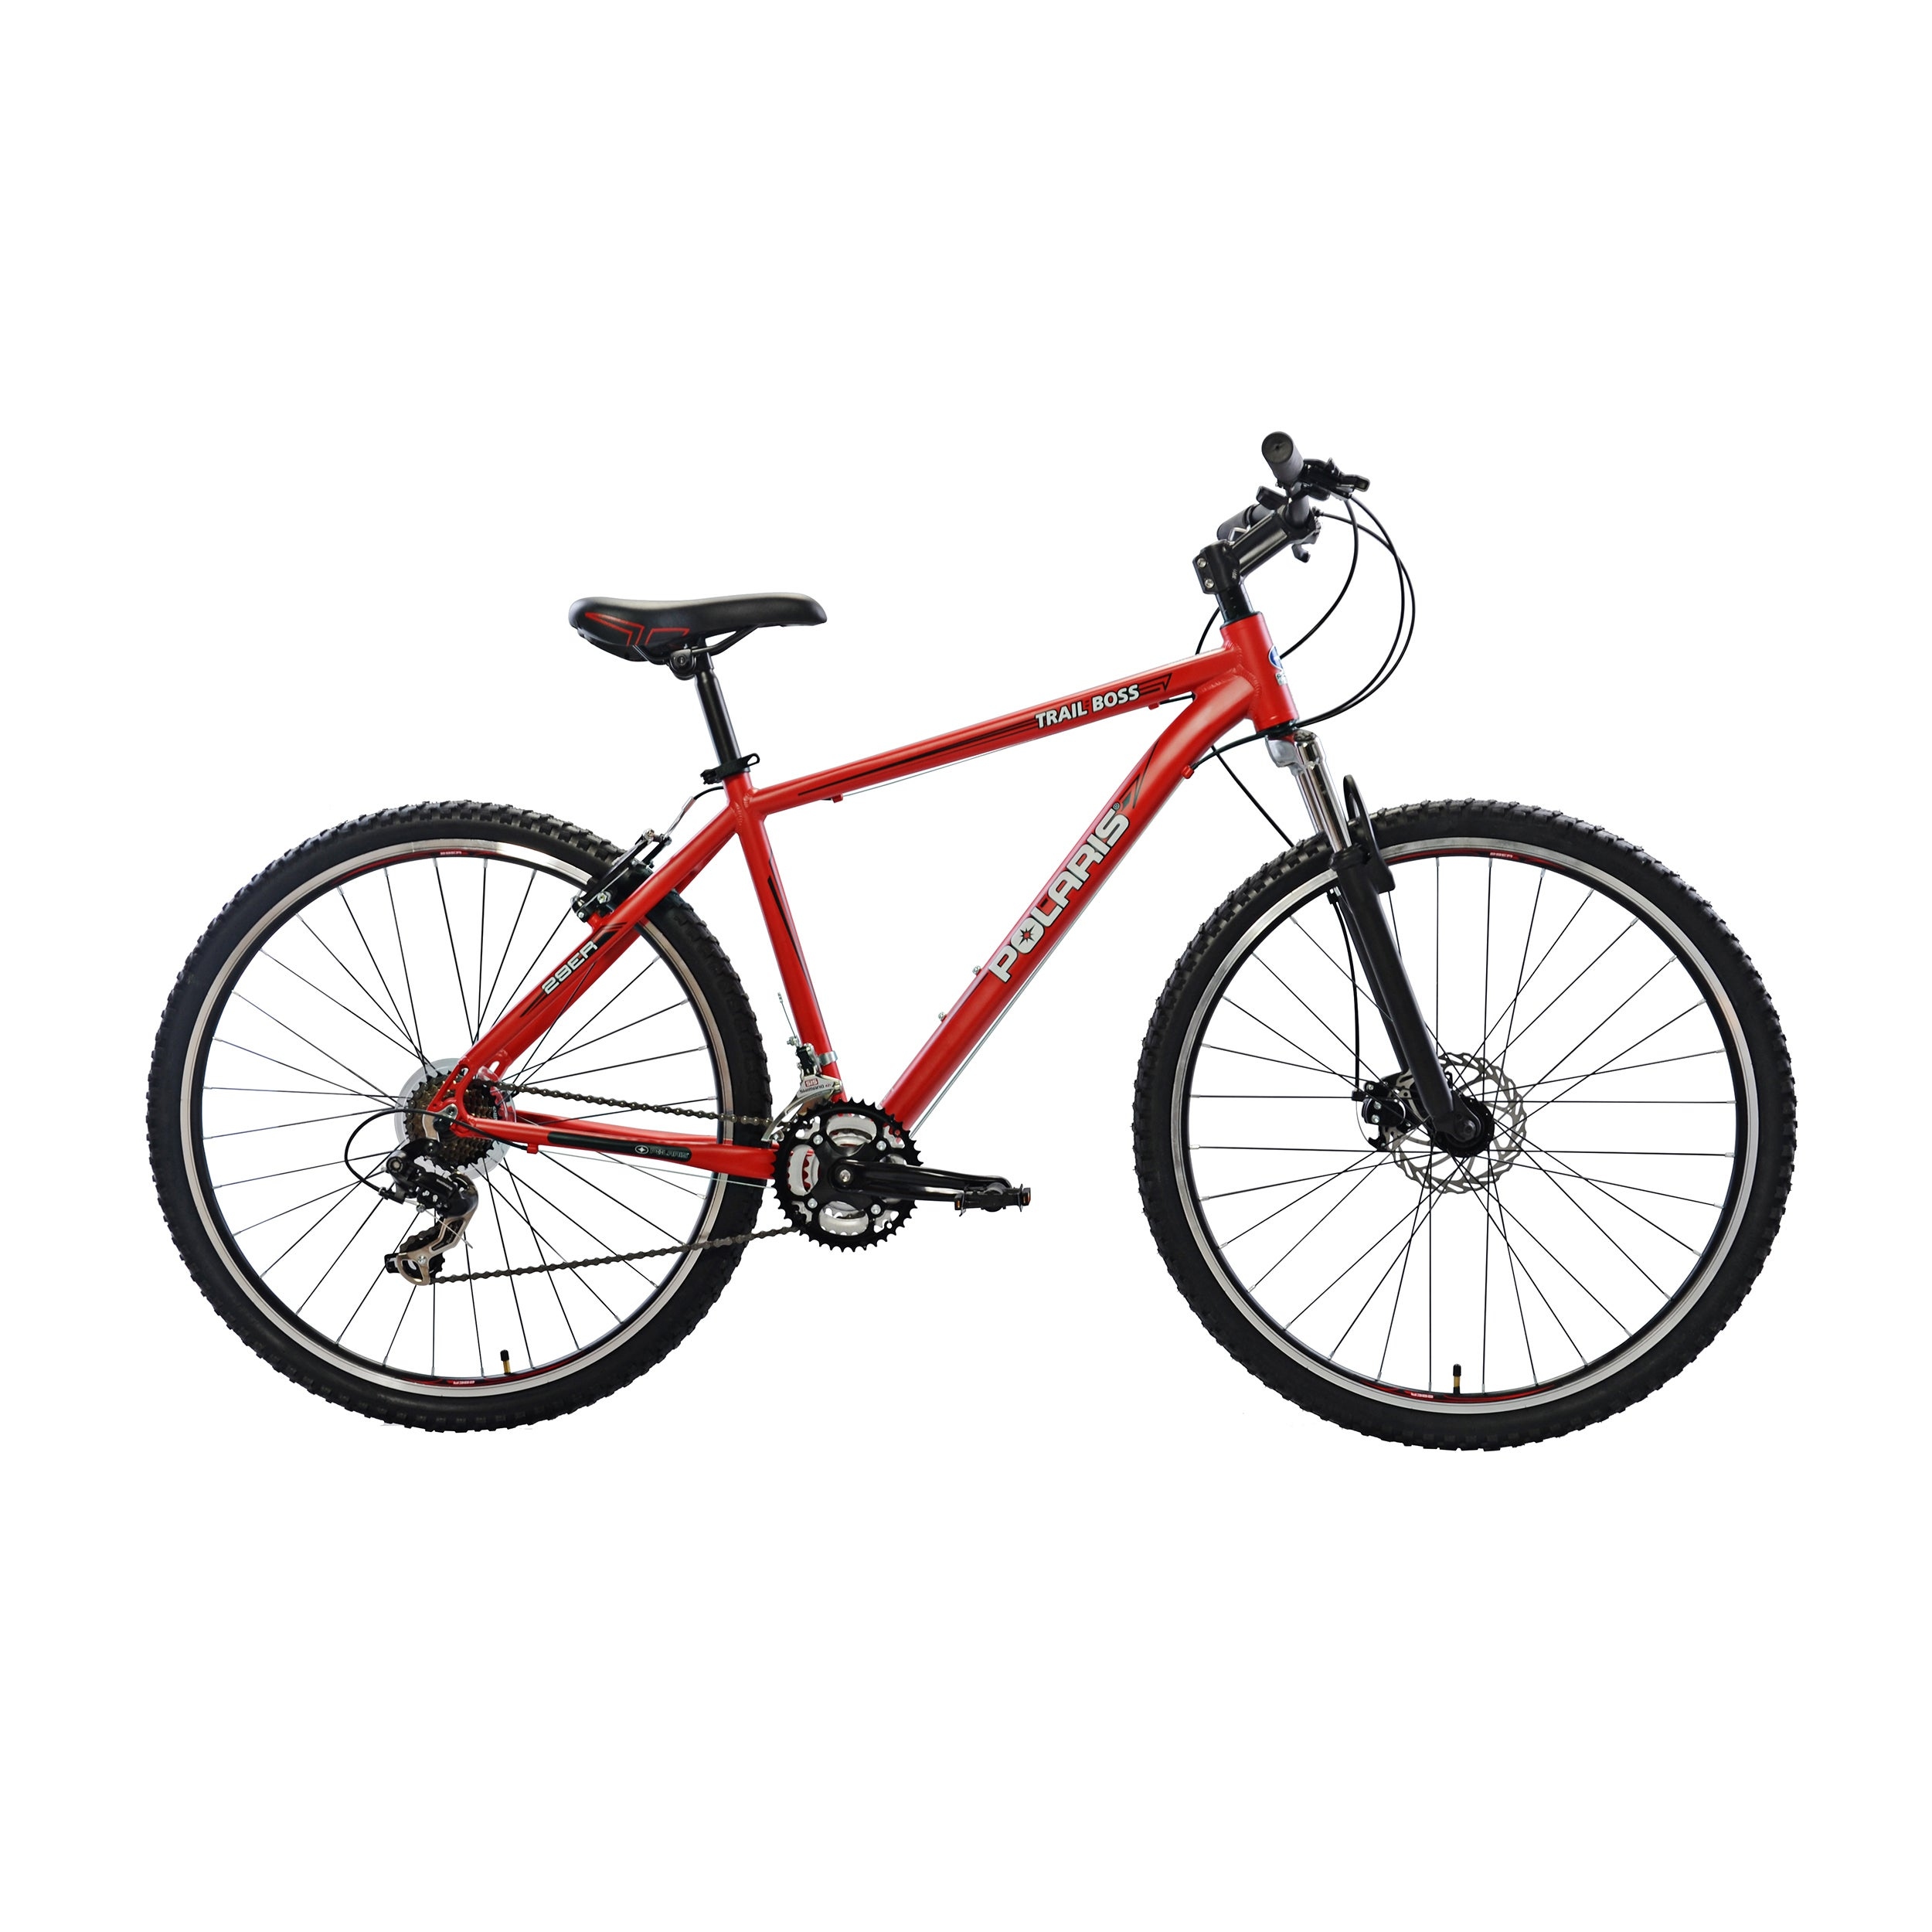 Polaris Trail Boss II Hardtail MTB Bicycle (Red), Size 29...